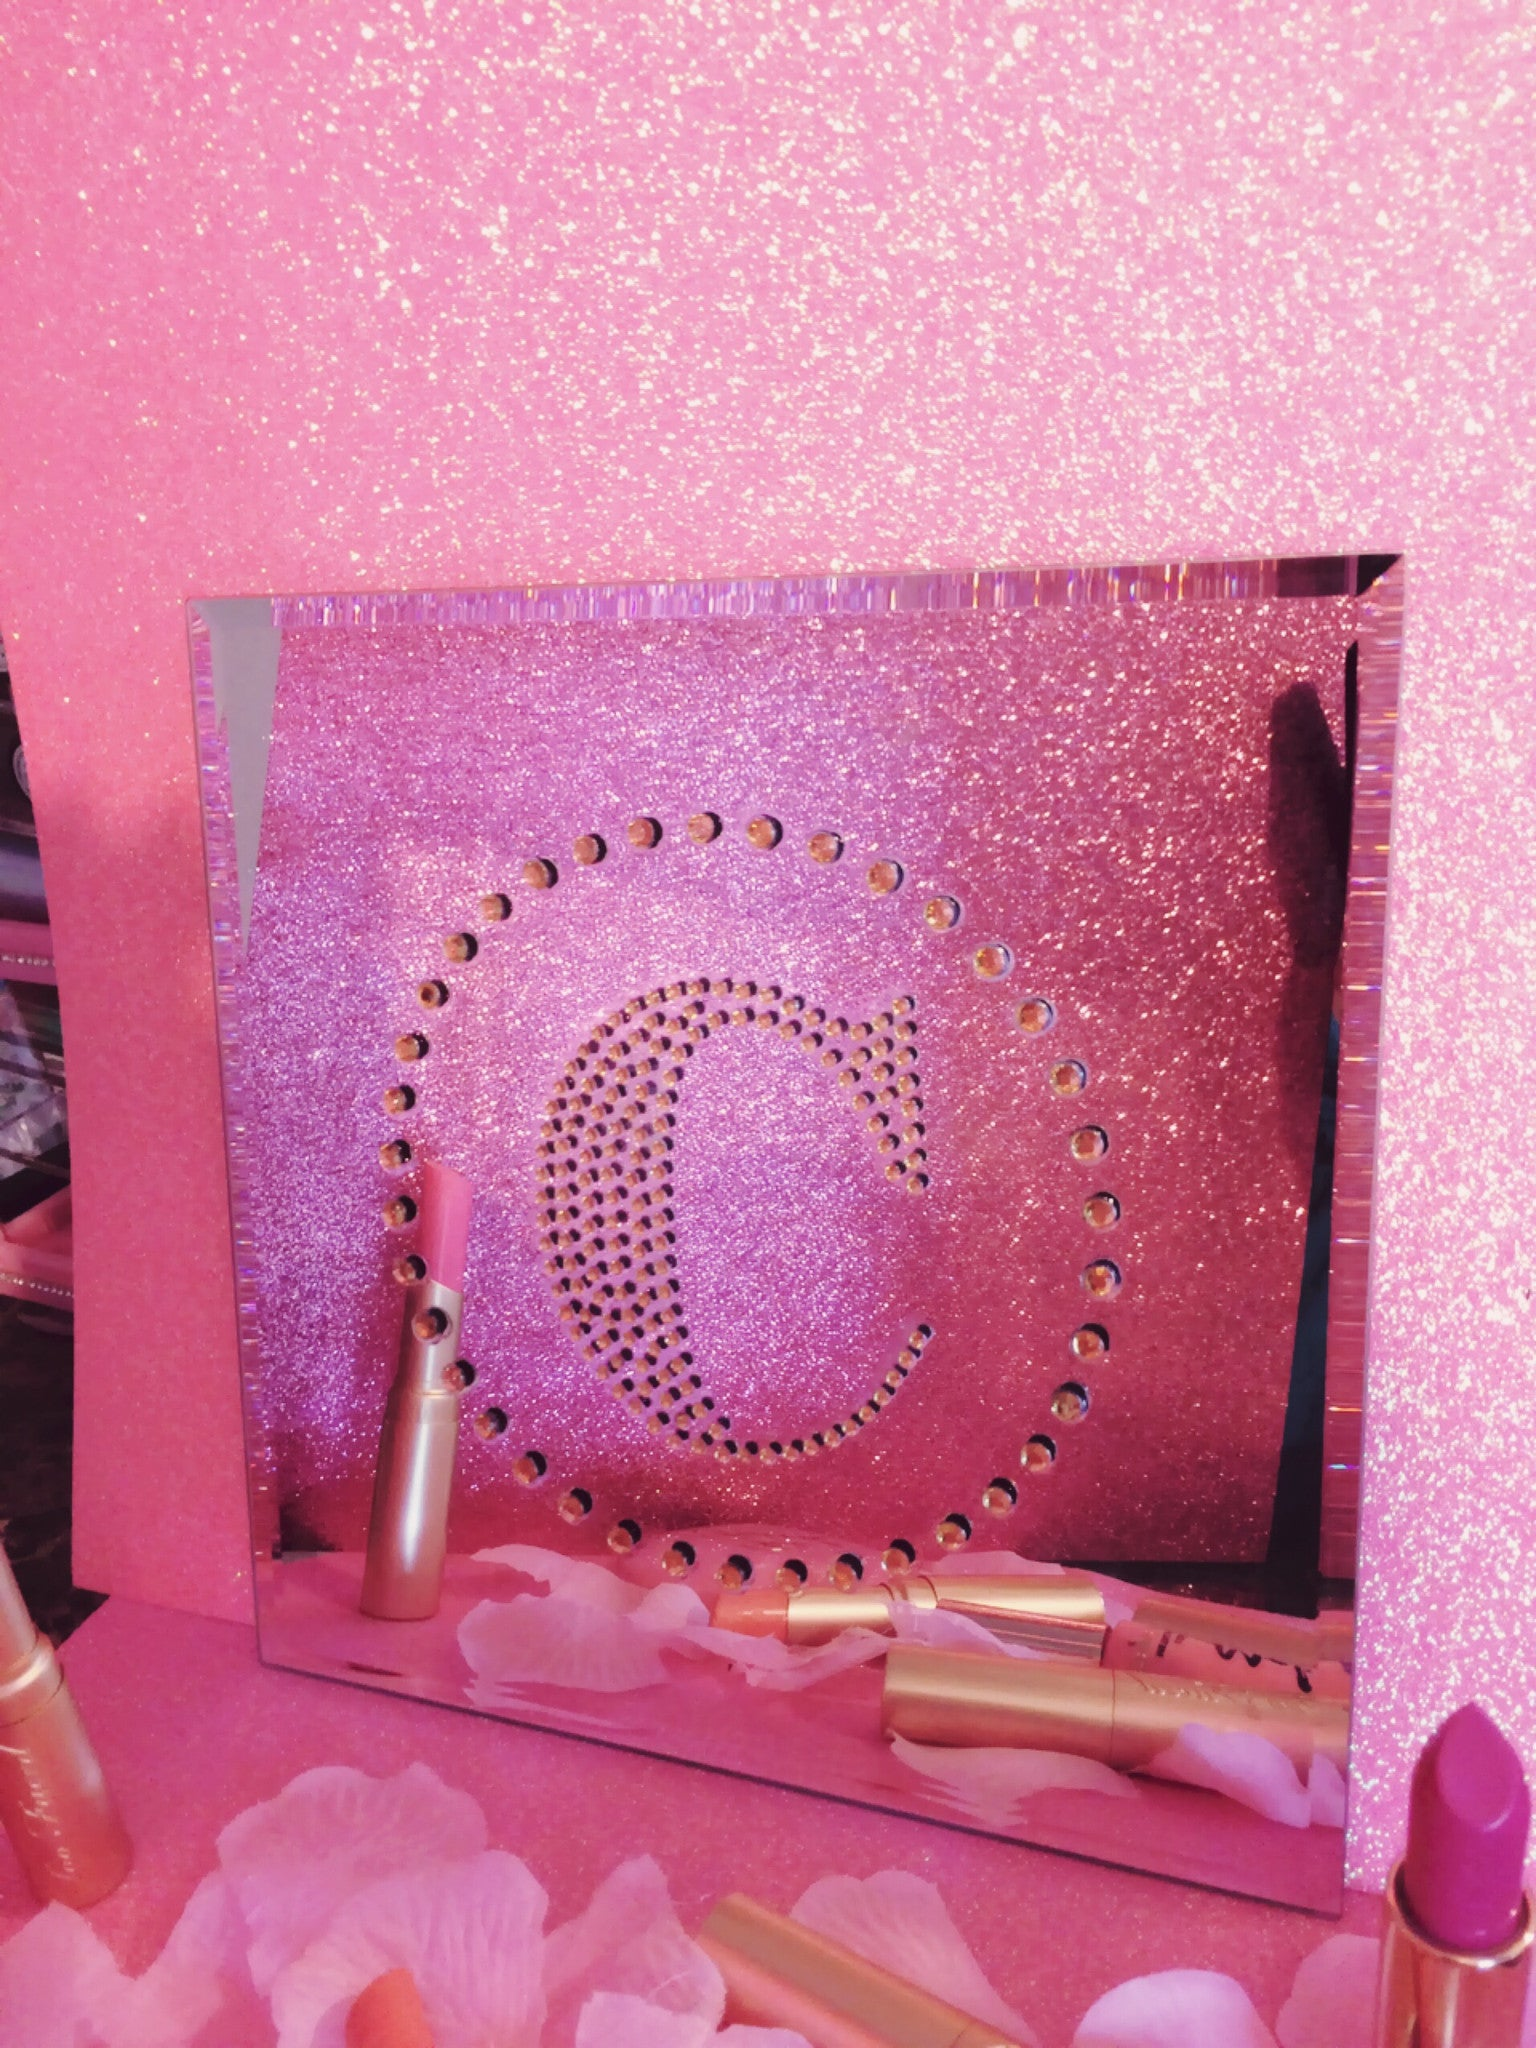 Letter C with rhinestones on a decor mirror